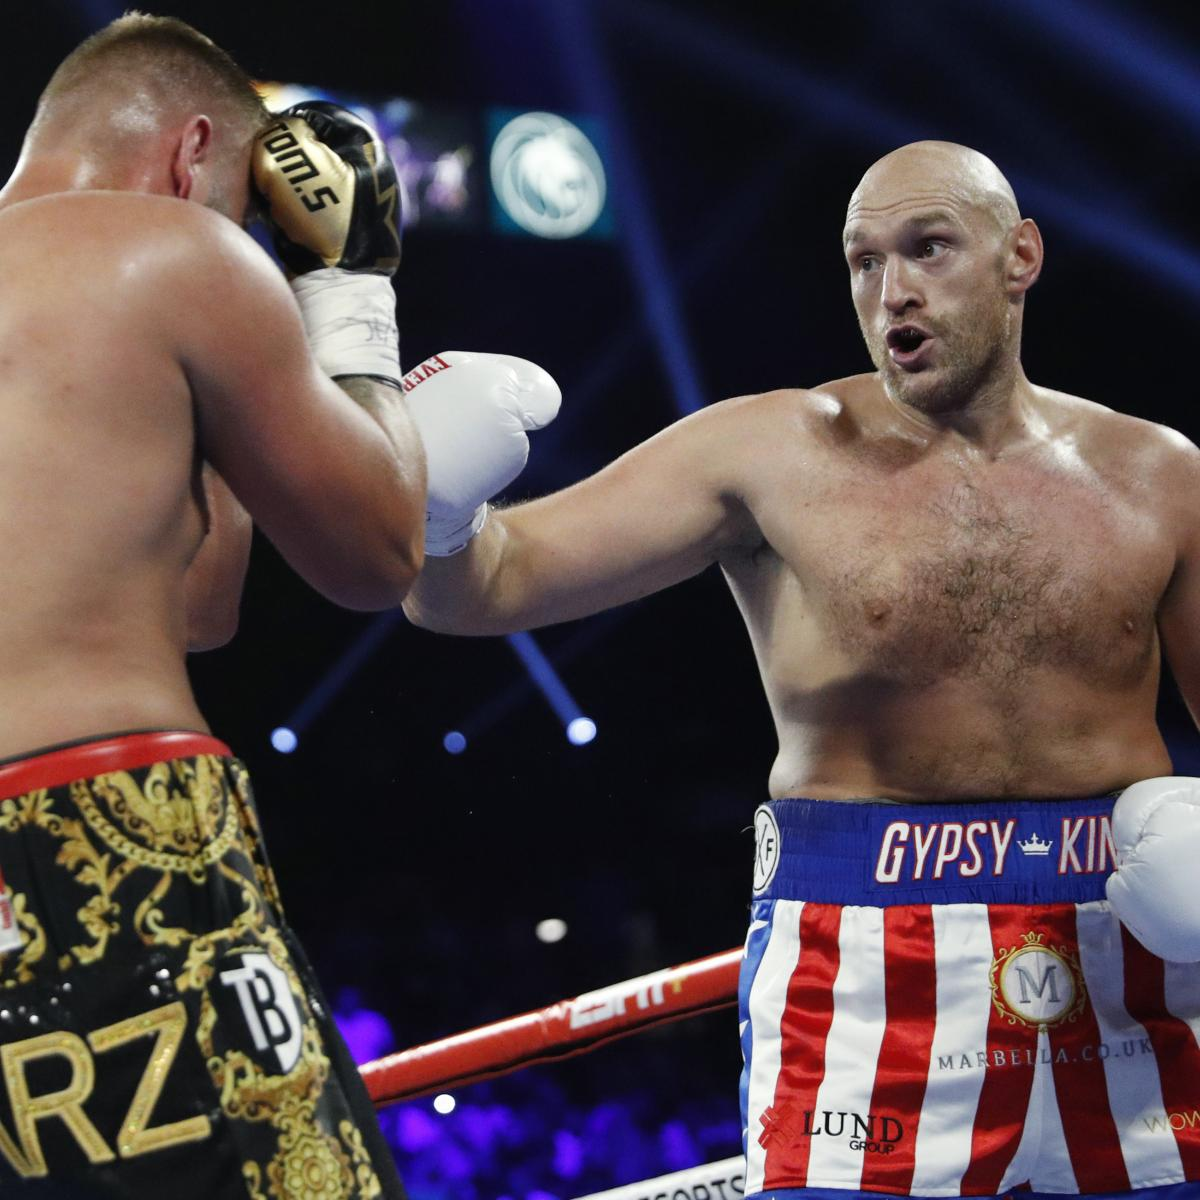 Video: Tyson Fury Sings Aerosmith In Ring To Celebrate TKO